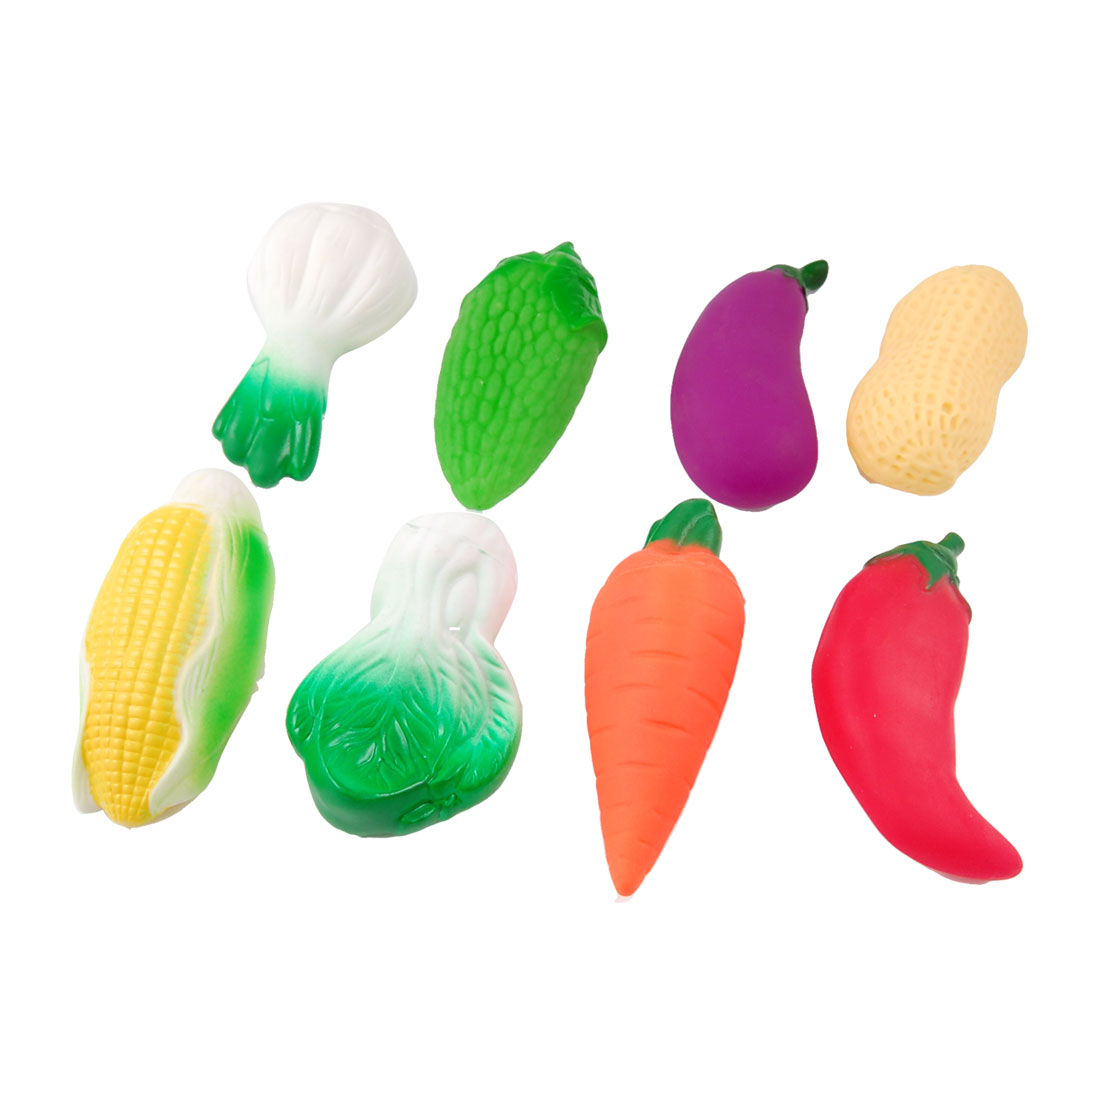 8 in 1 Artificial Colorful Vegetable Sound Squeaky Toy for Children